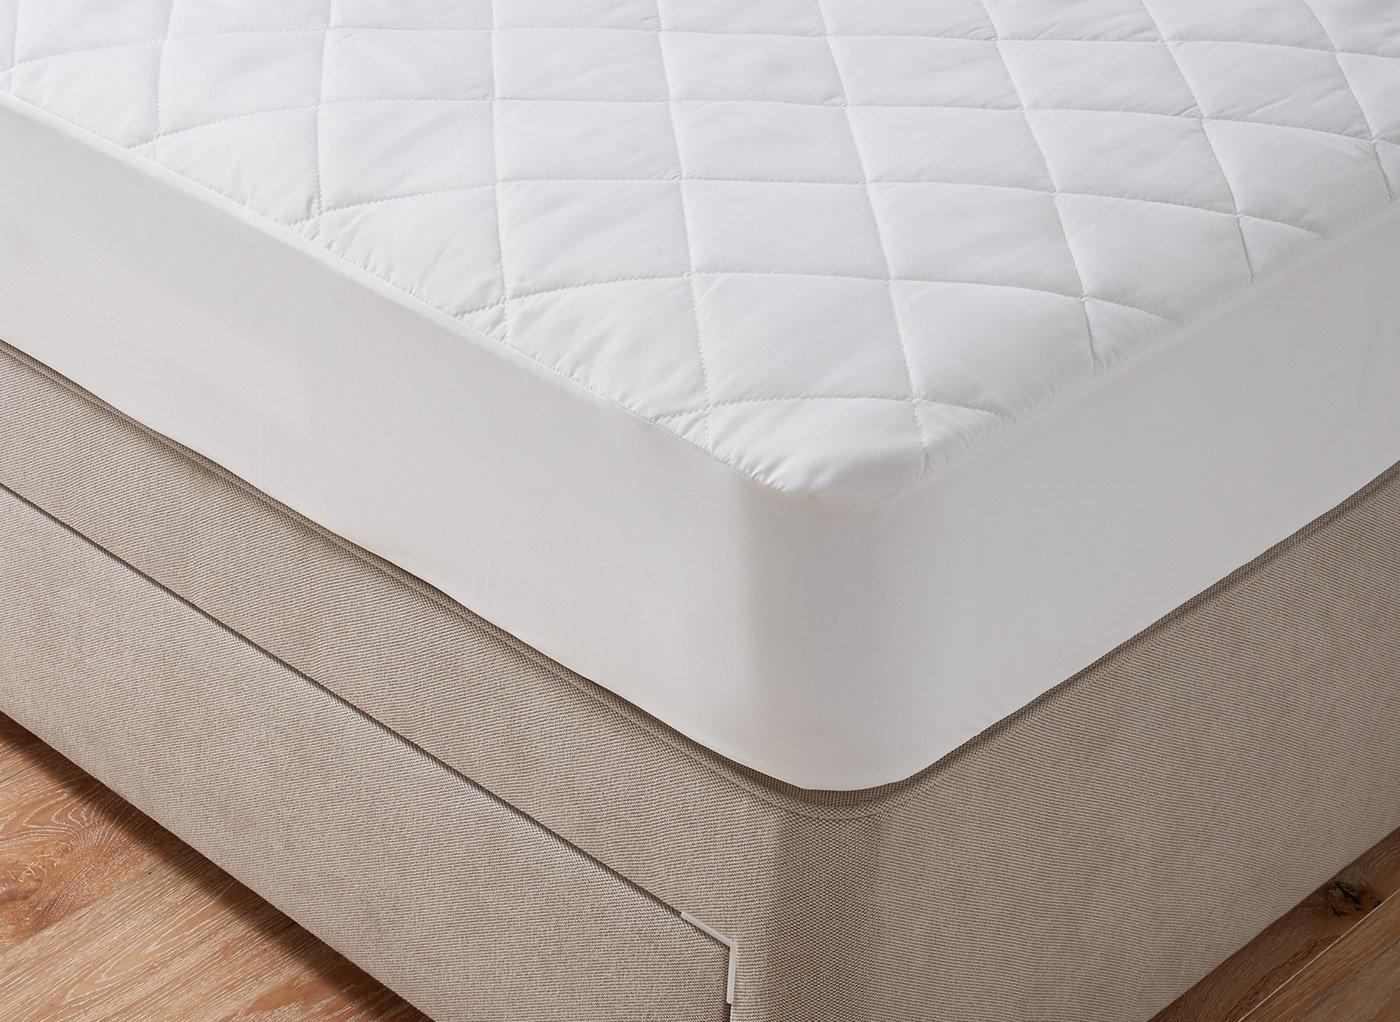 Doze Super Soft Mattress Protector